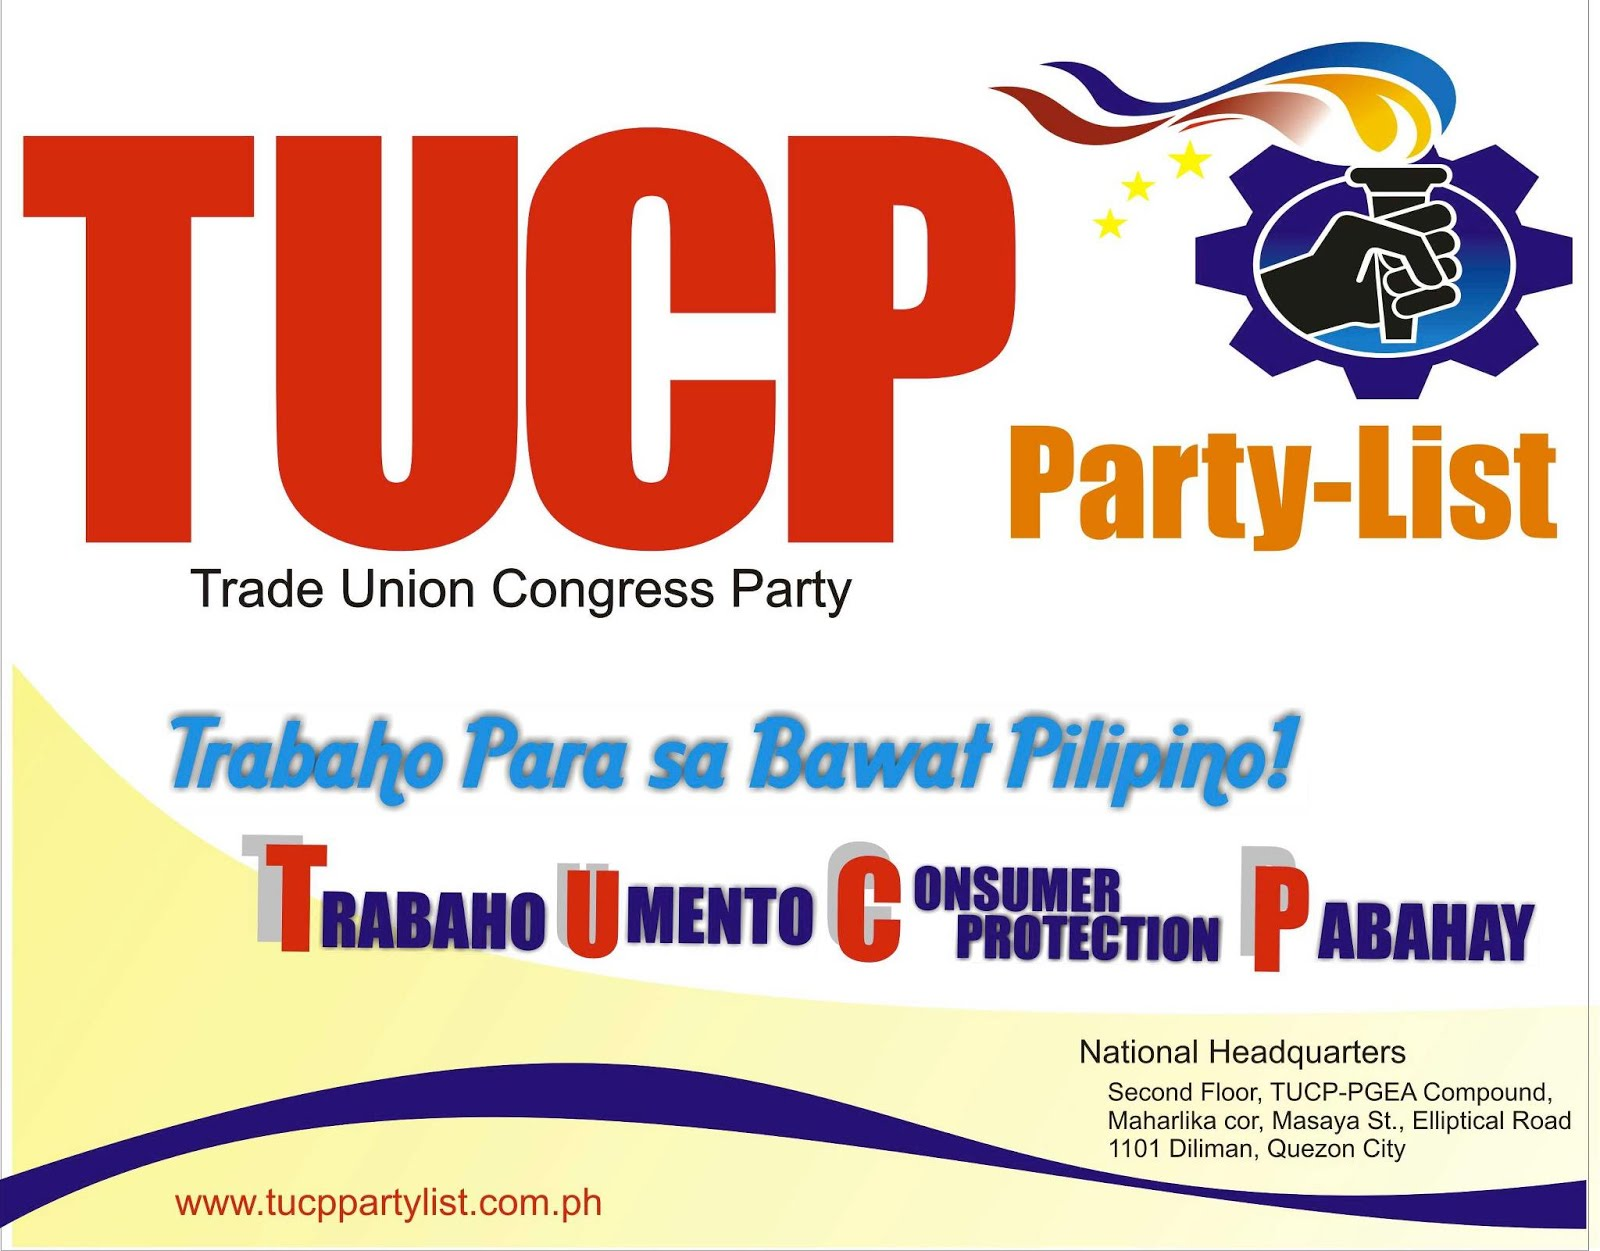 TUCP Party-list